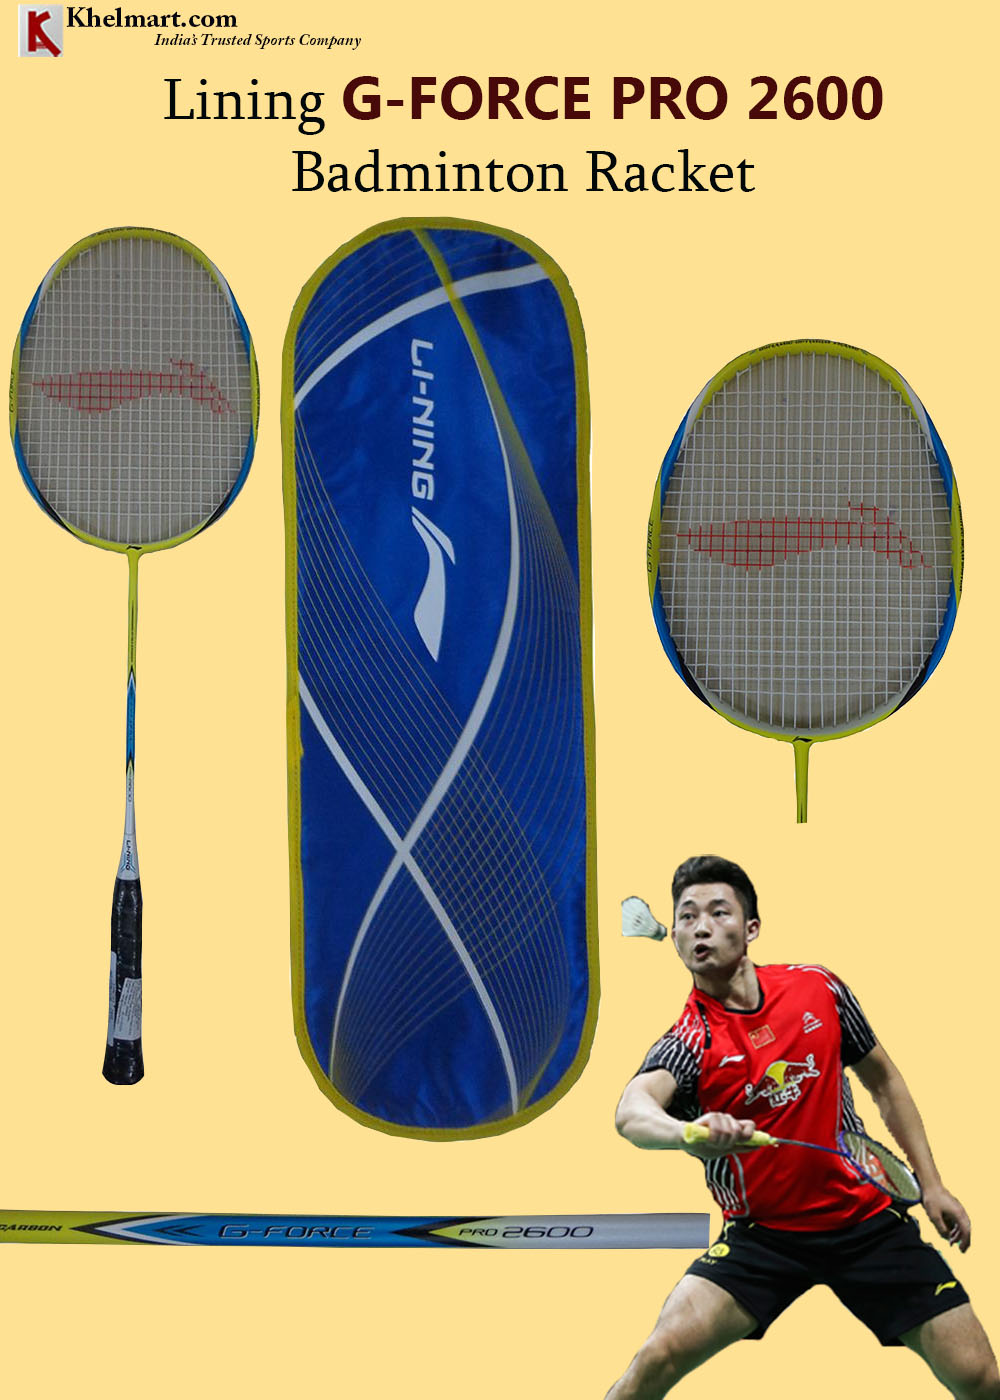 Lining G Force Pro 2600 Badminton Racket